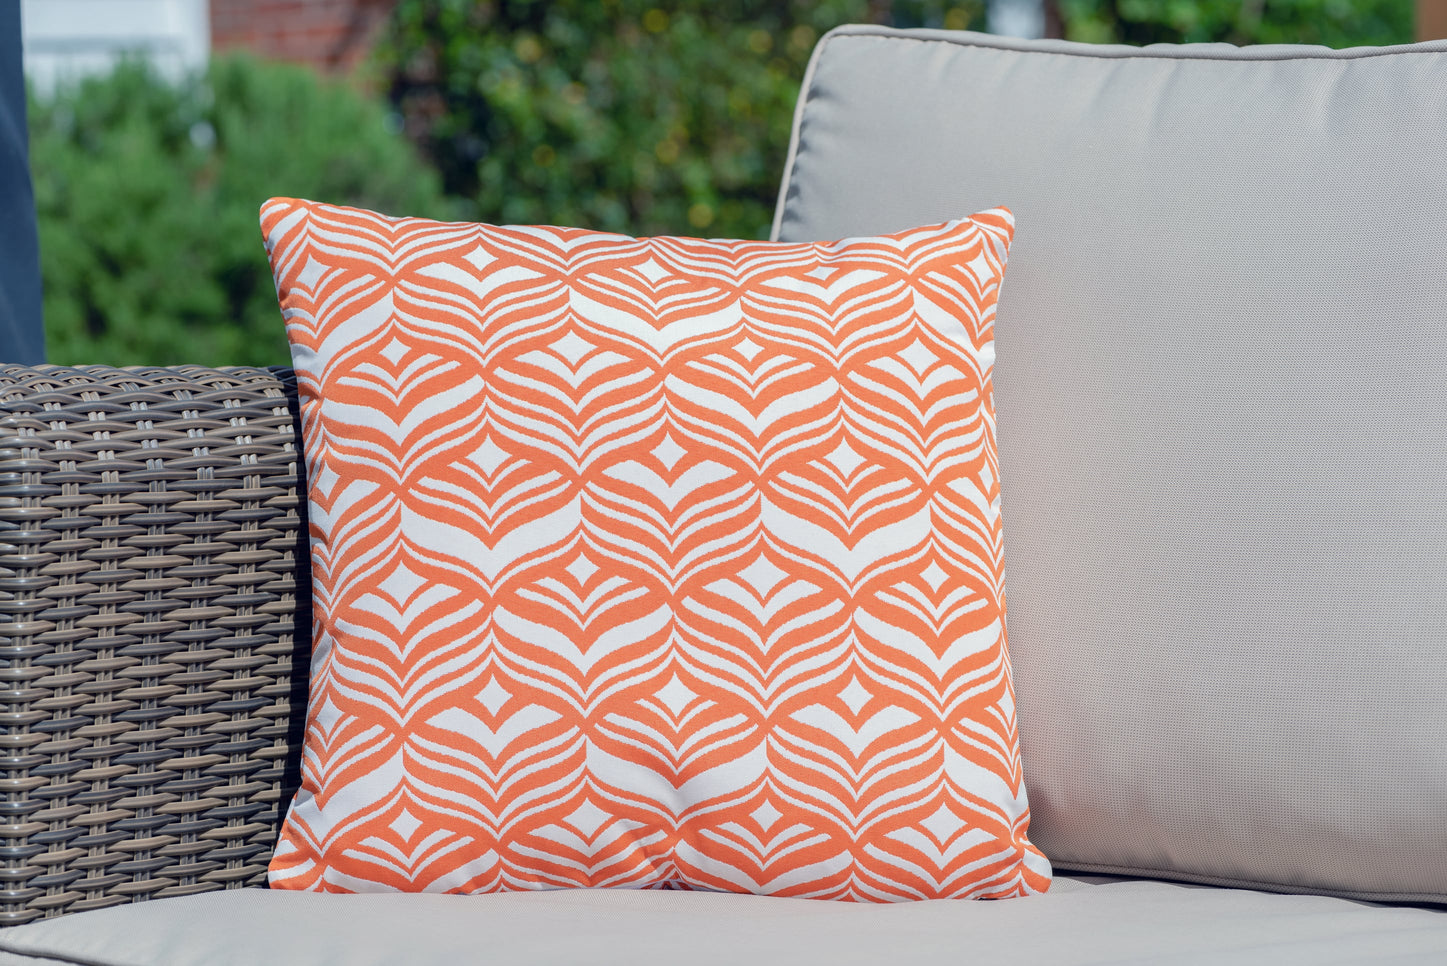 Armadillo sun waterproof cushion in dark orange and white tulip pattern